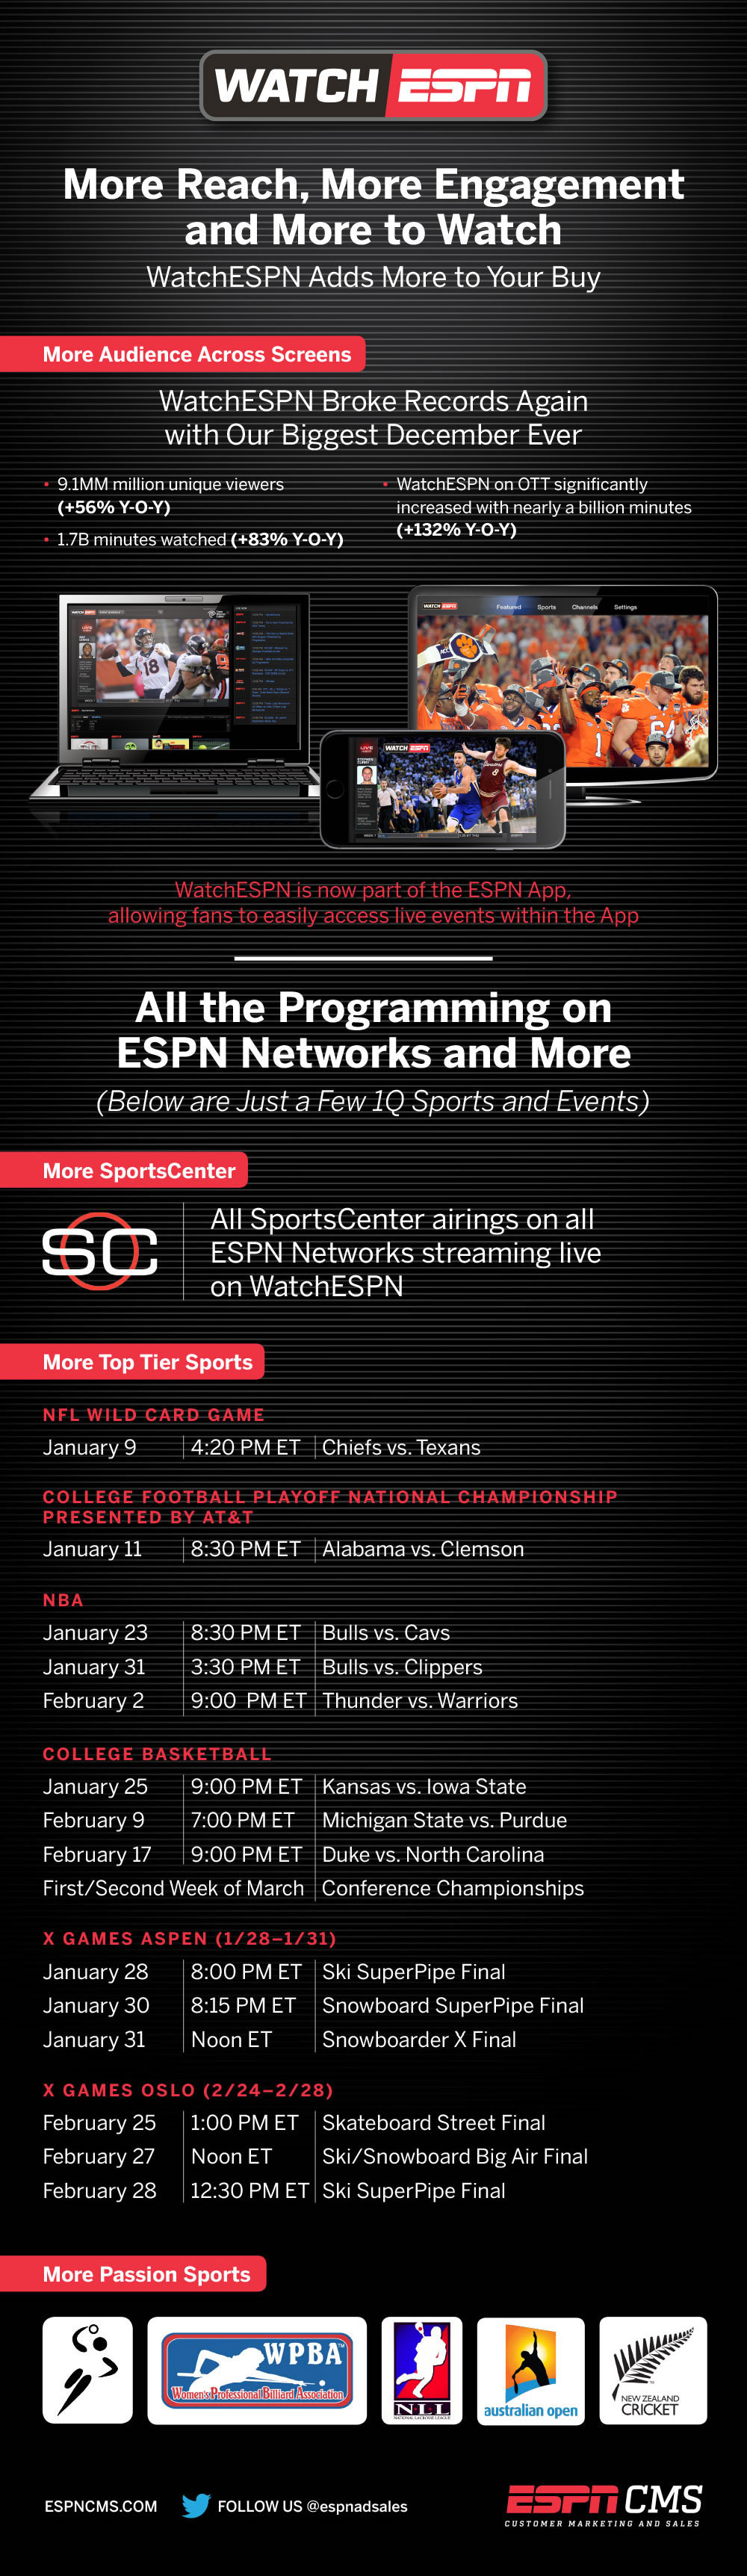 ESPNCMS Stream - More Reach More Engagement and More To Watch